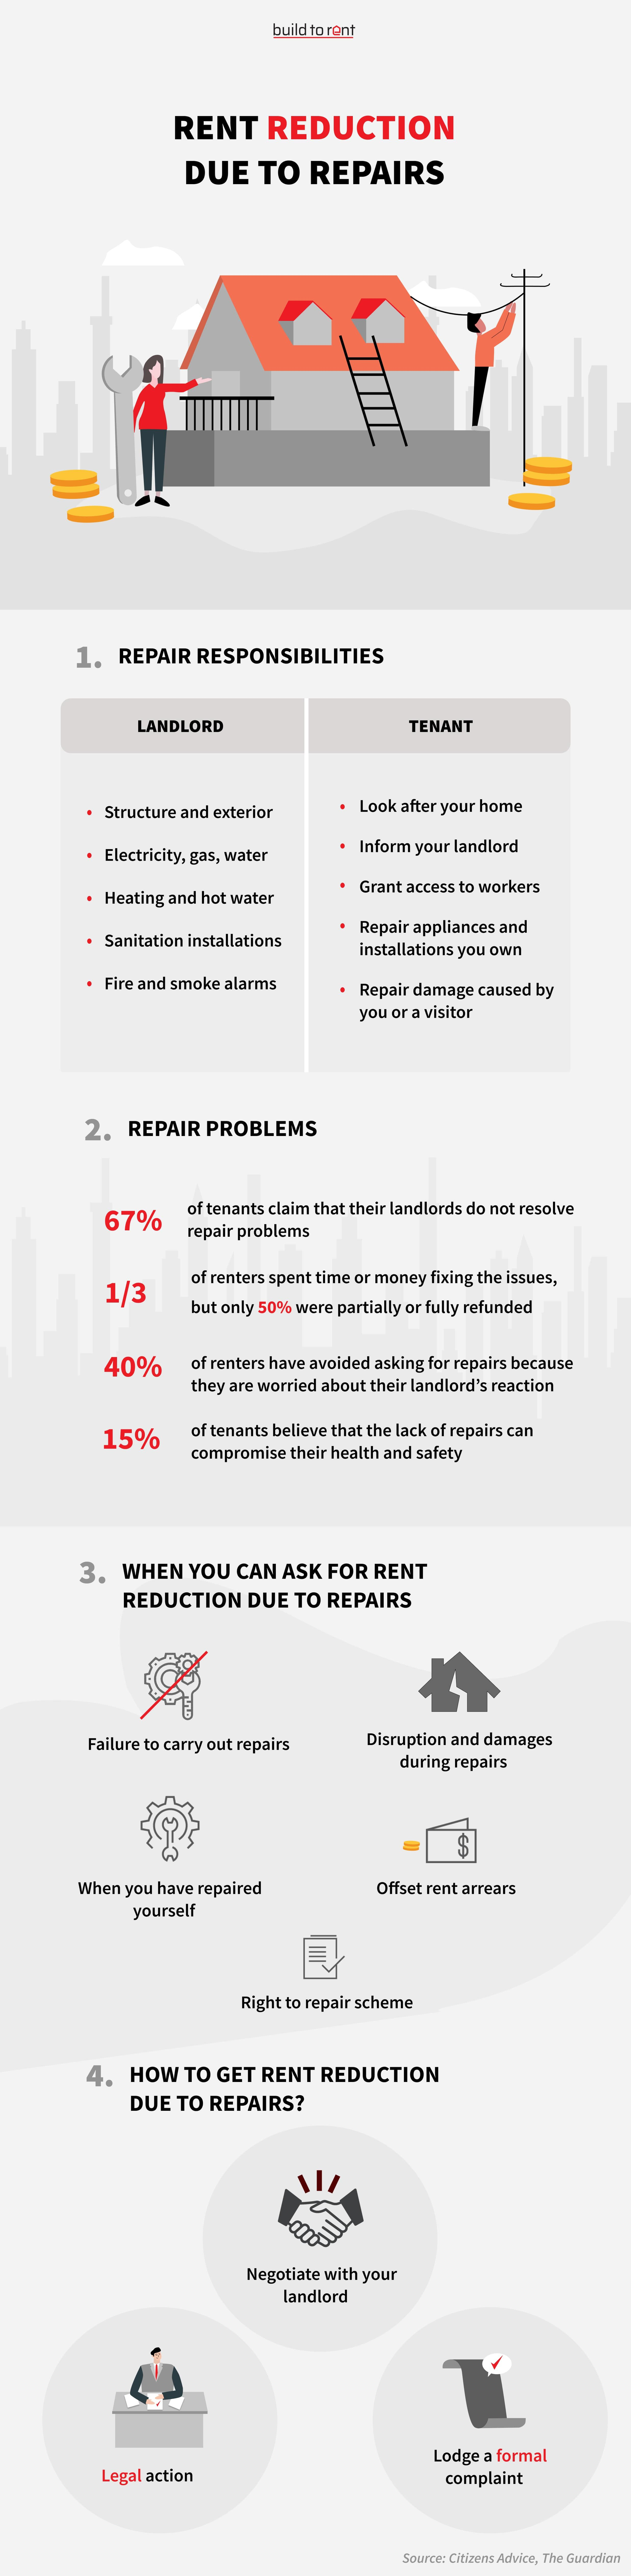 How To Ask For A Rent Reduction Due To Repairs